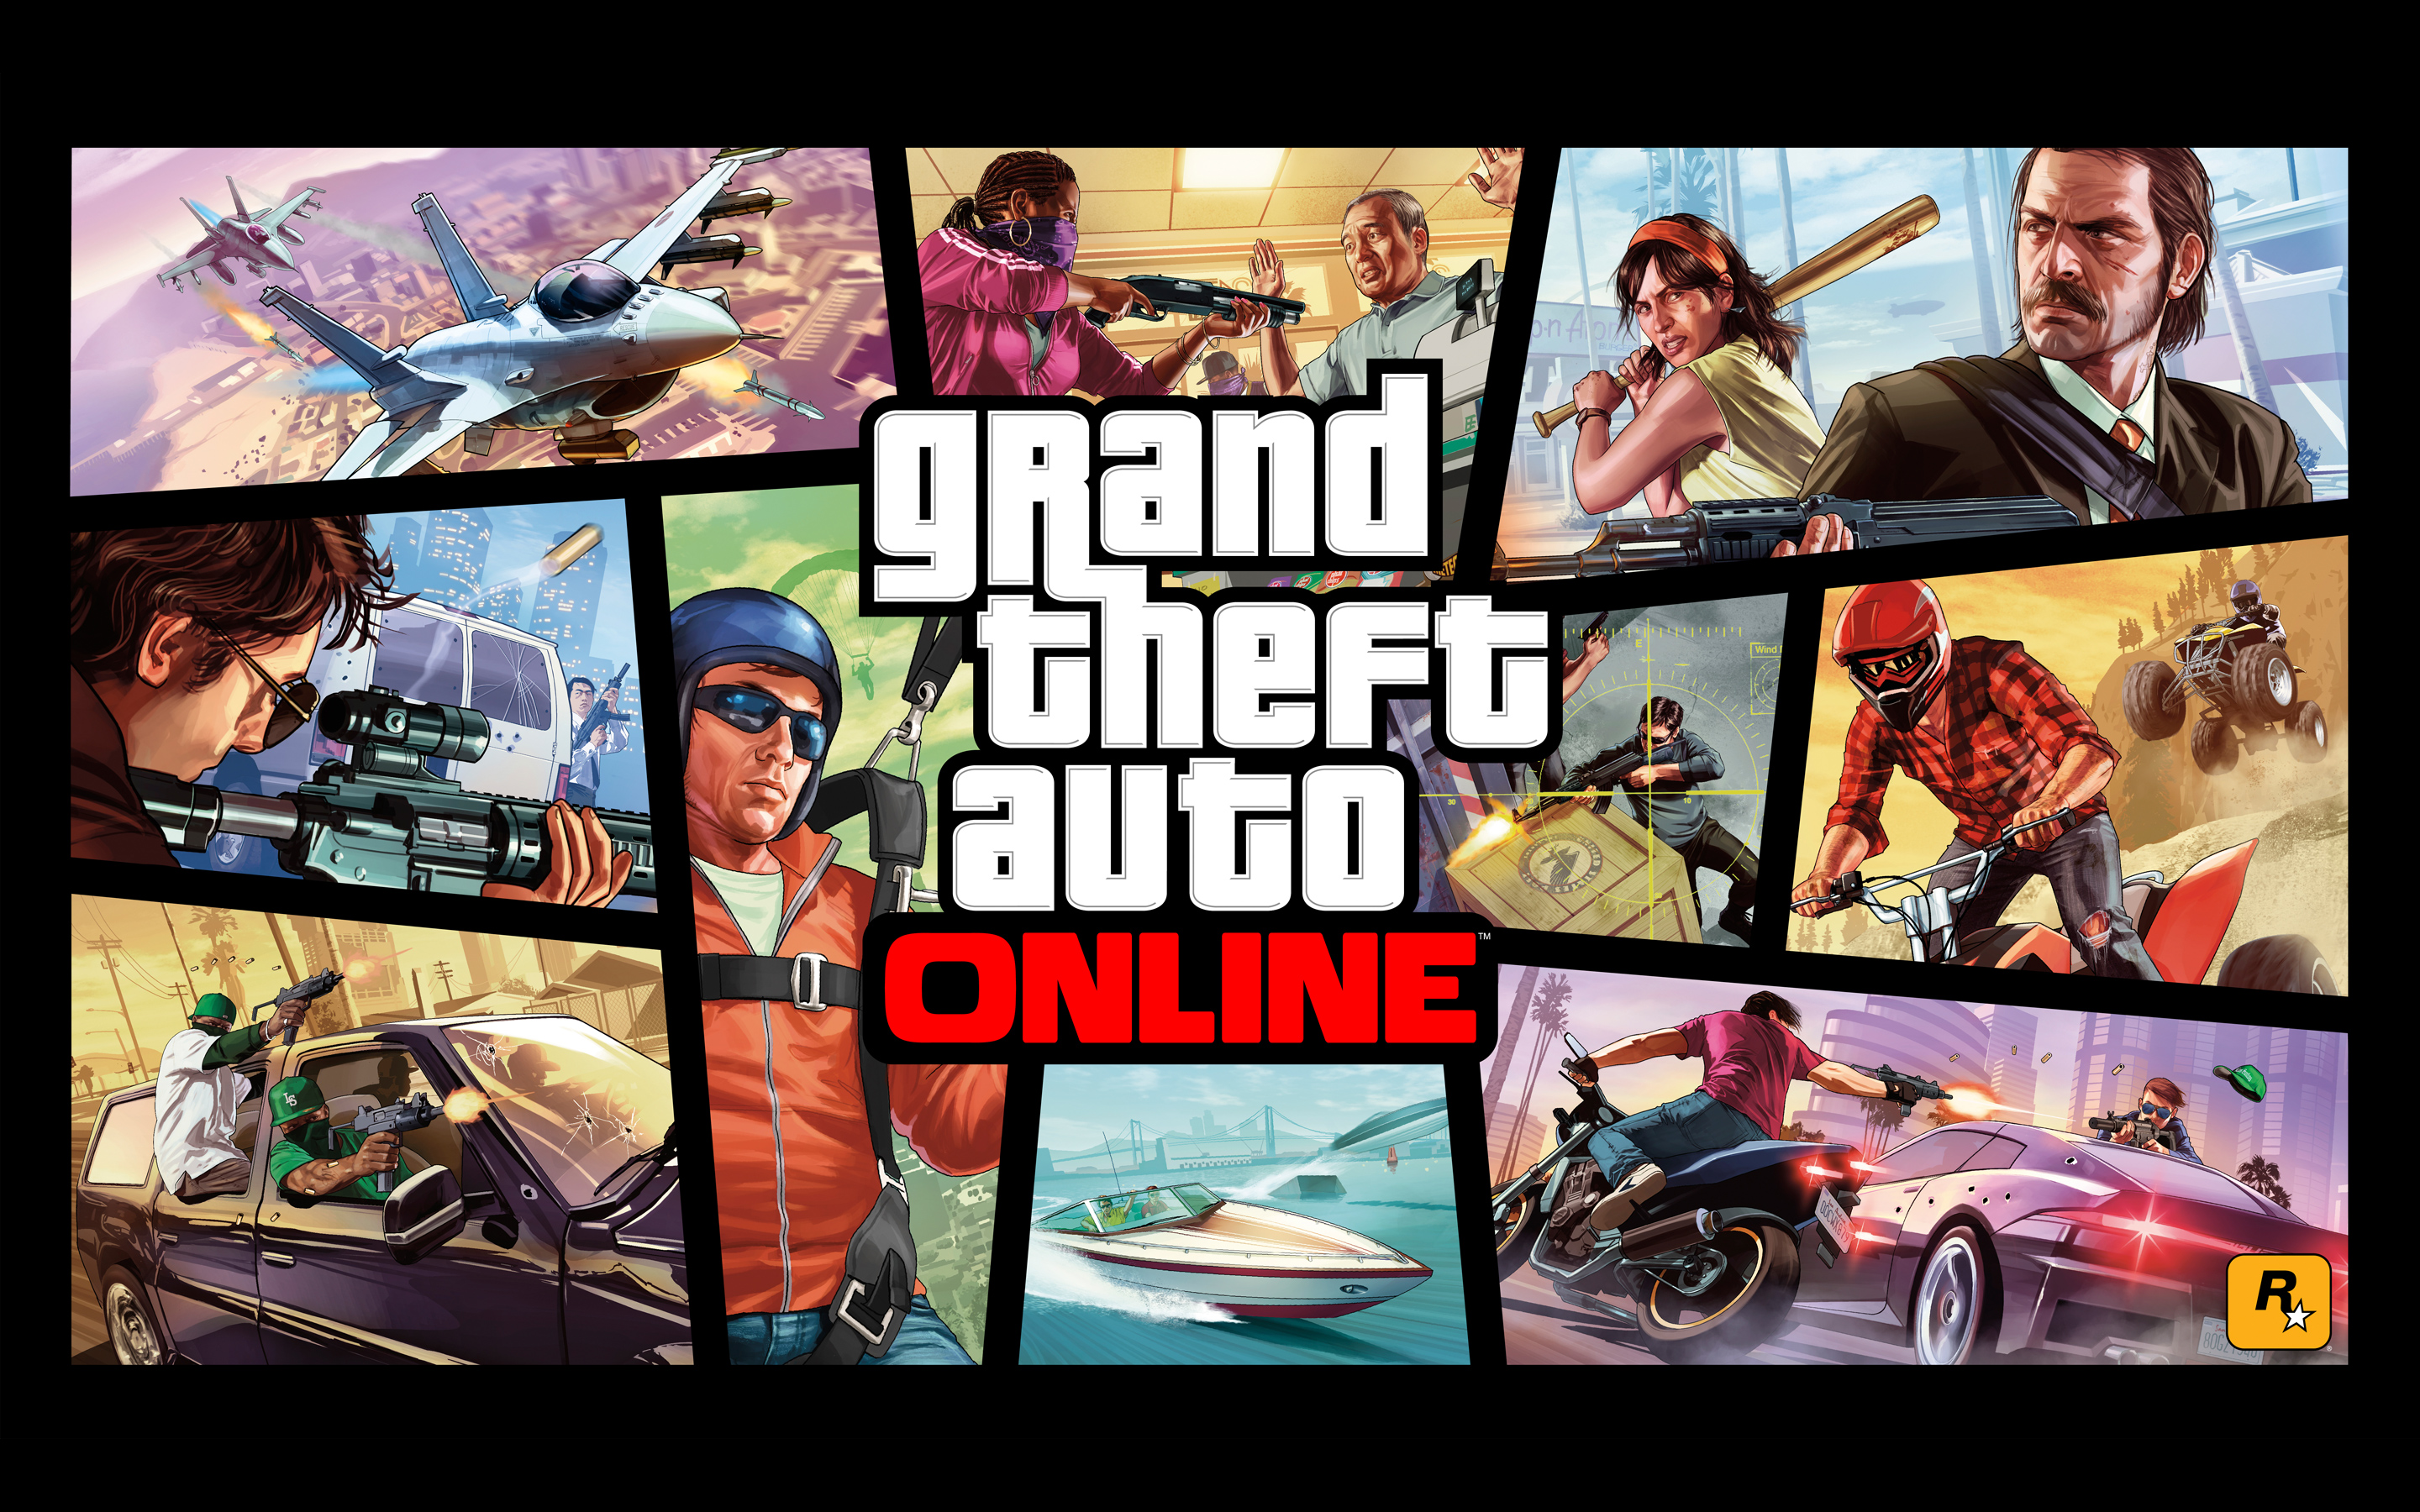 HD Wallpapers Gr Theft Auto Online